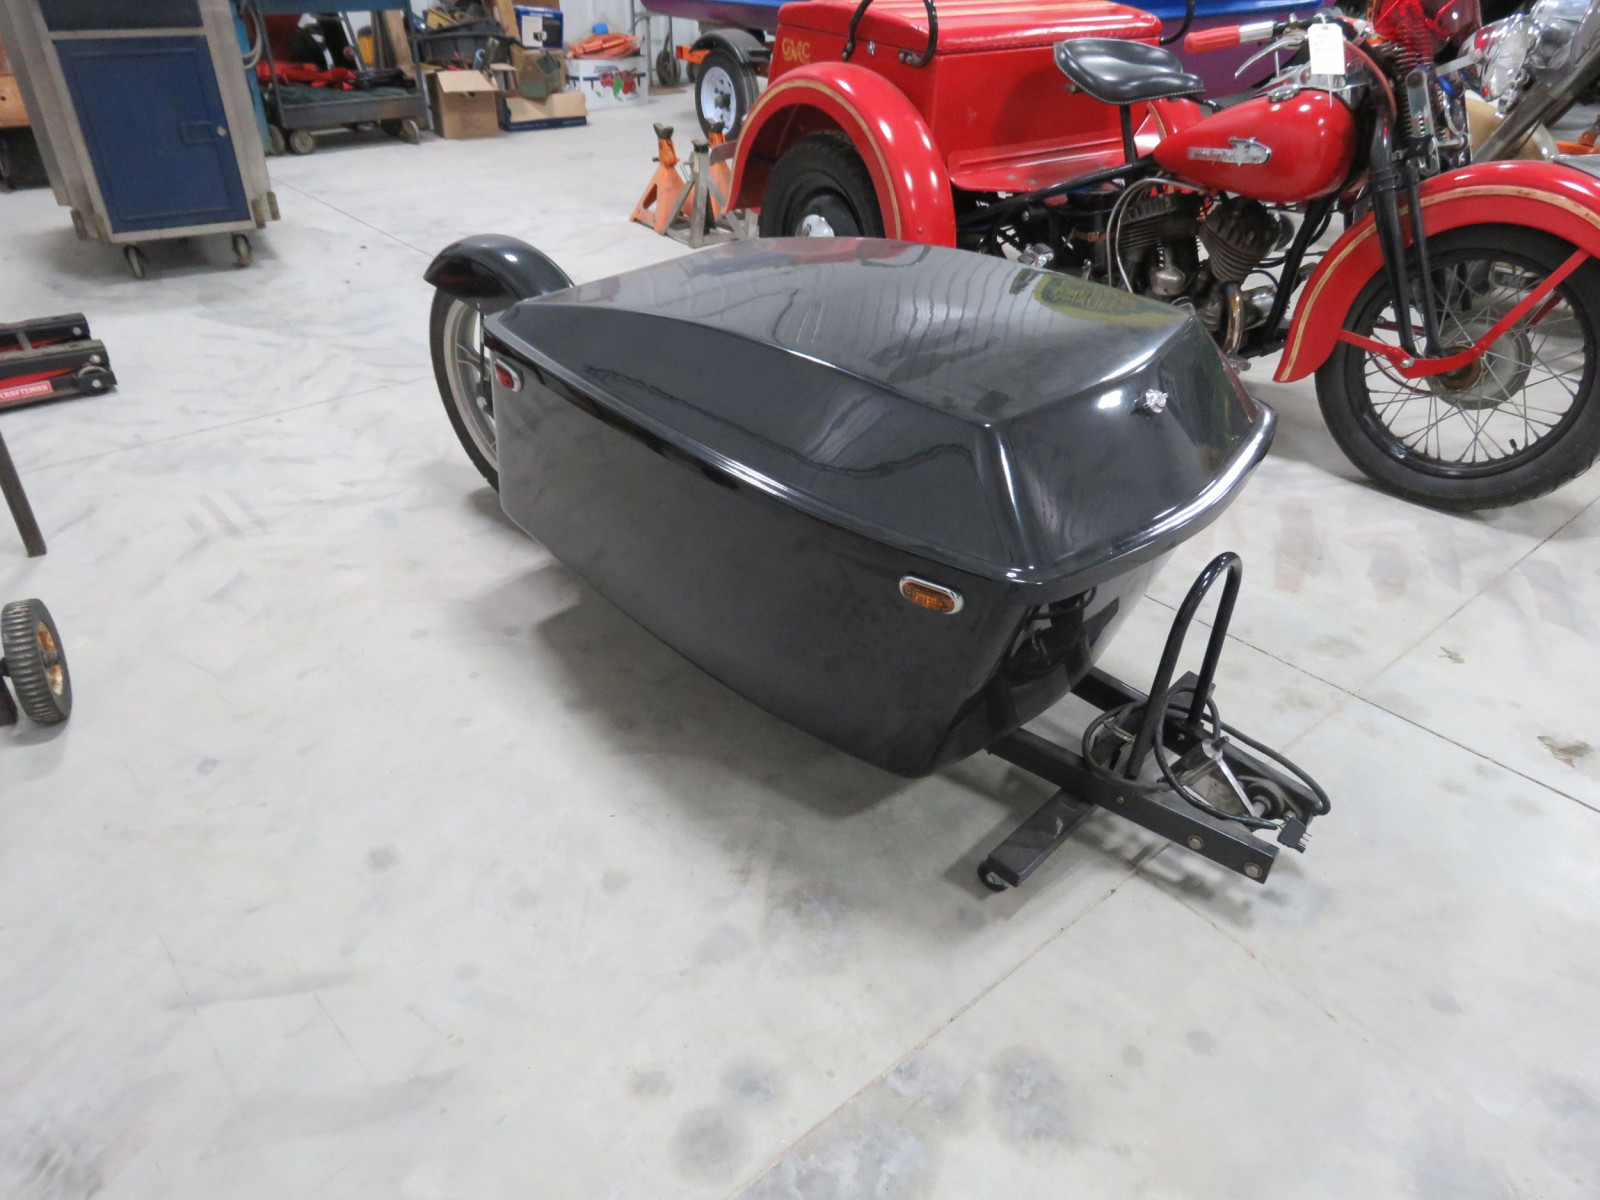 2009 Nline Motorcycle Trailer - Image 2